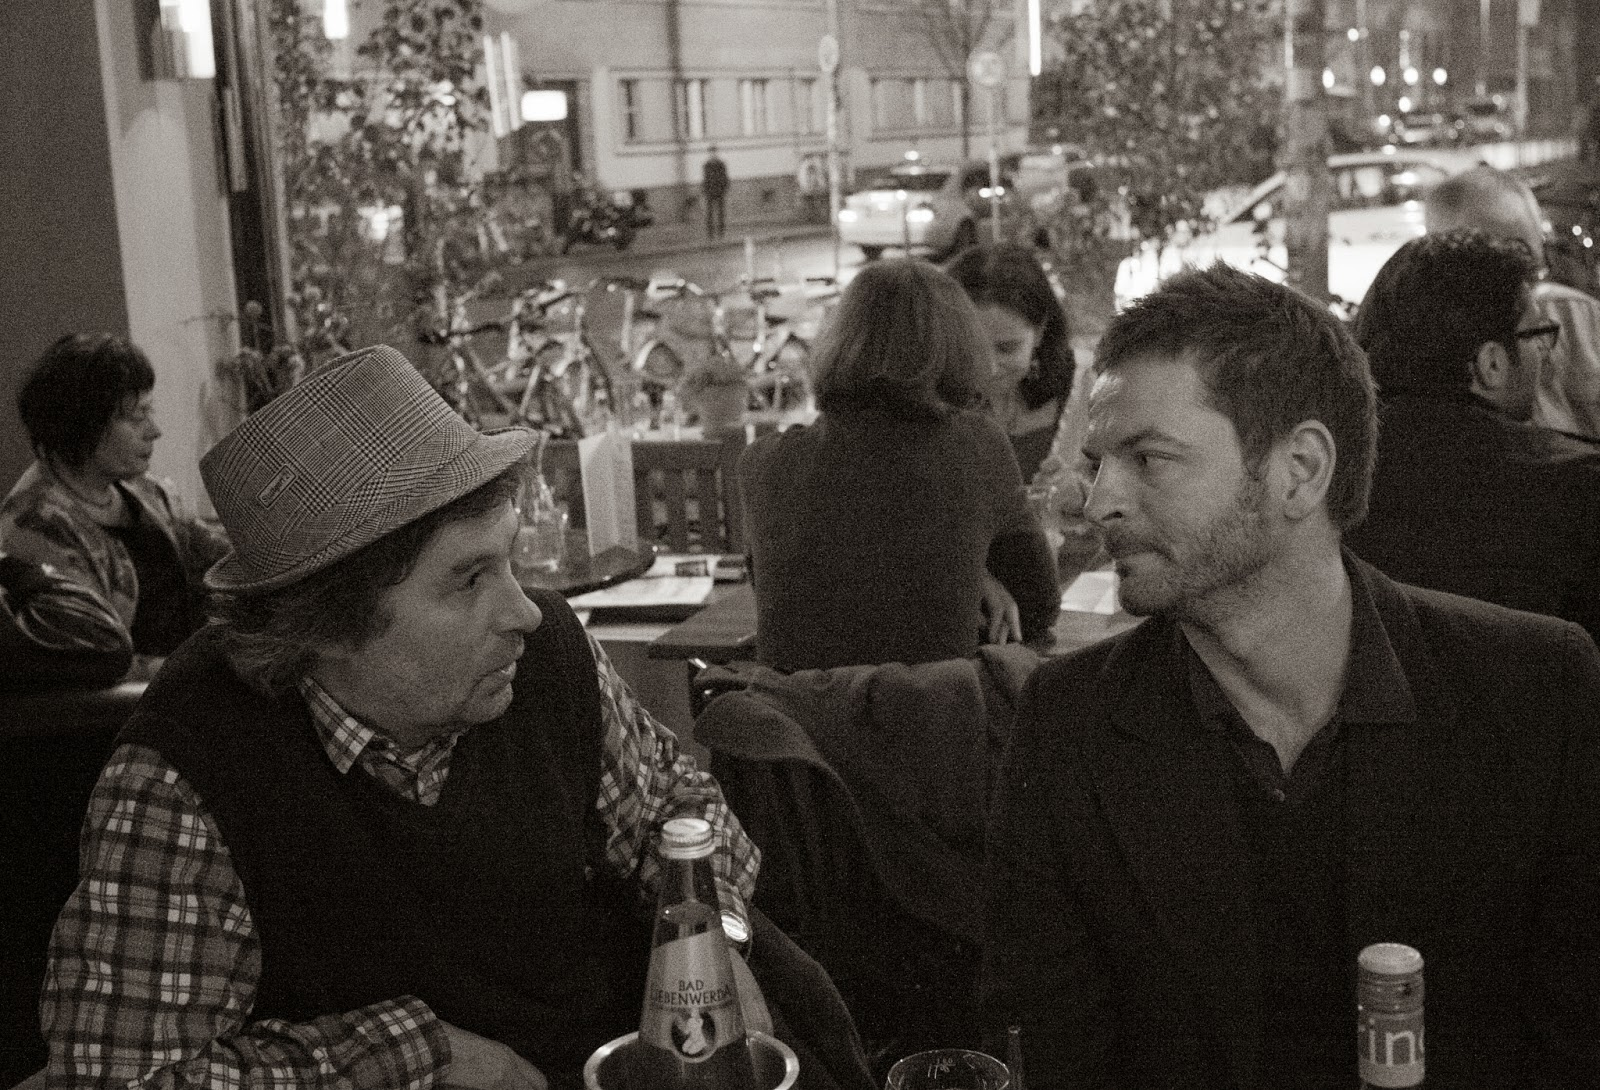 Raimar Stange in discussion with Anri Sala